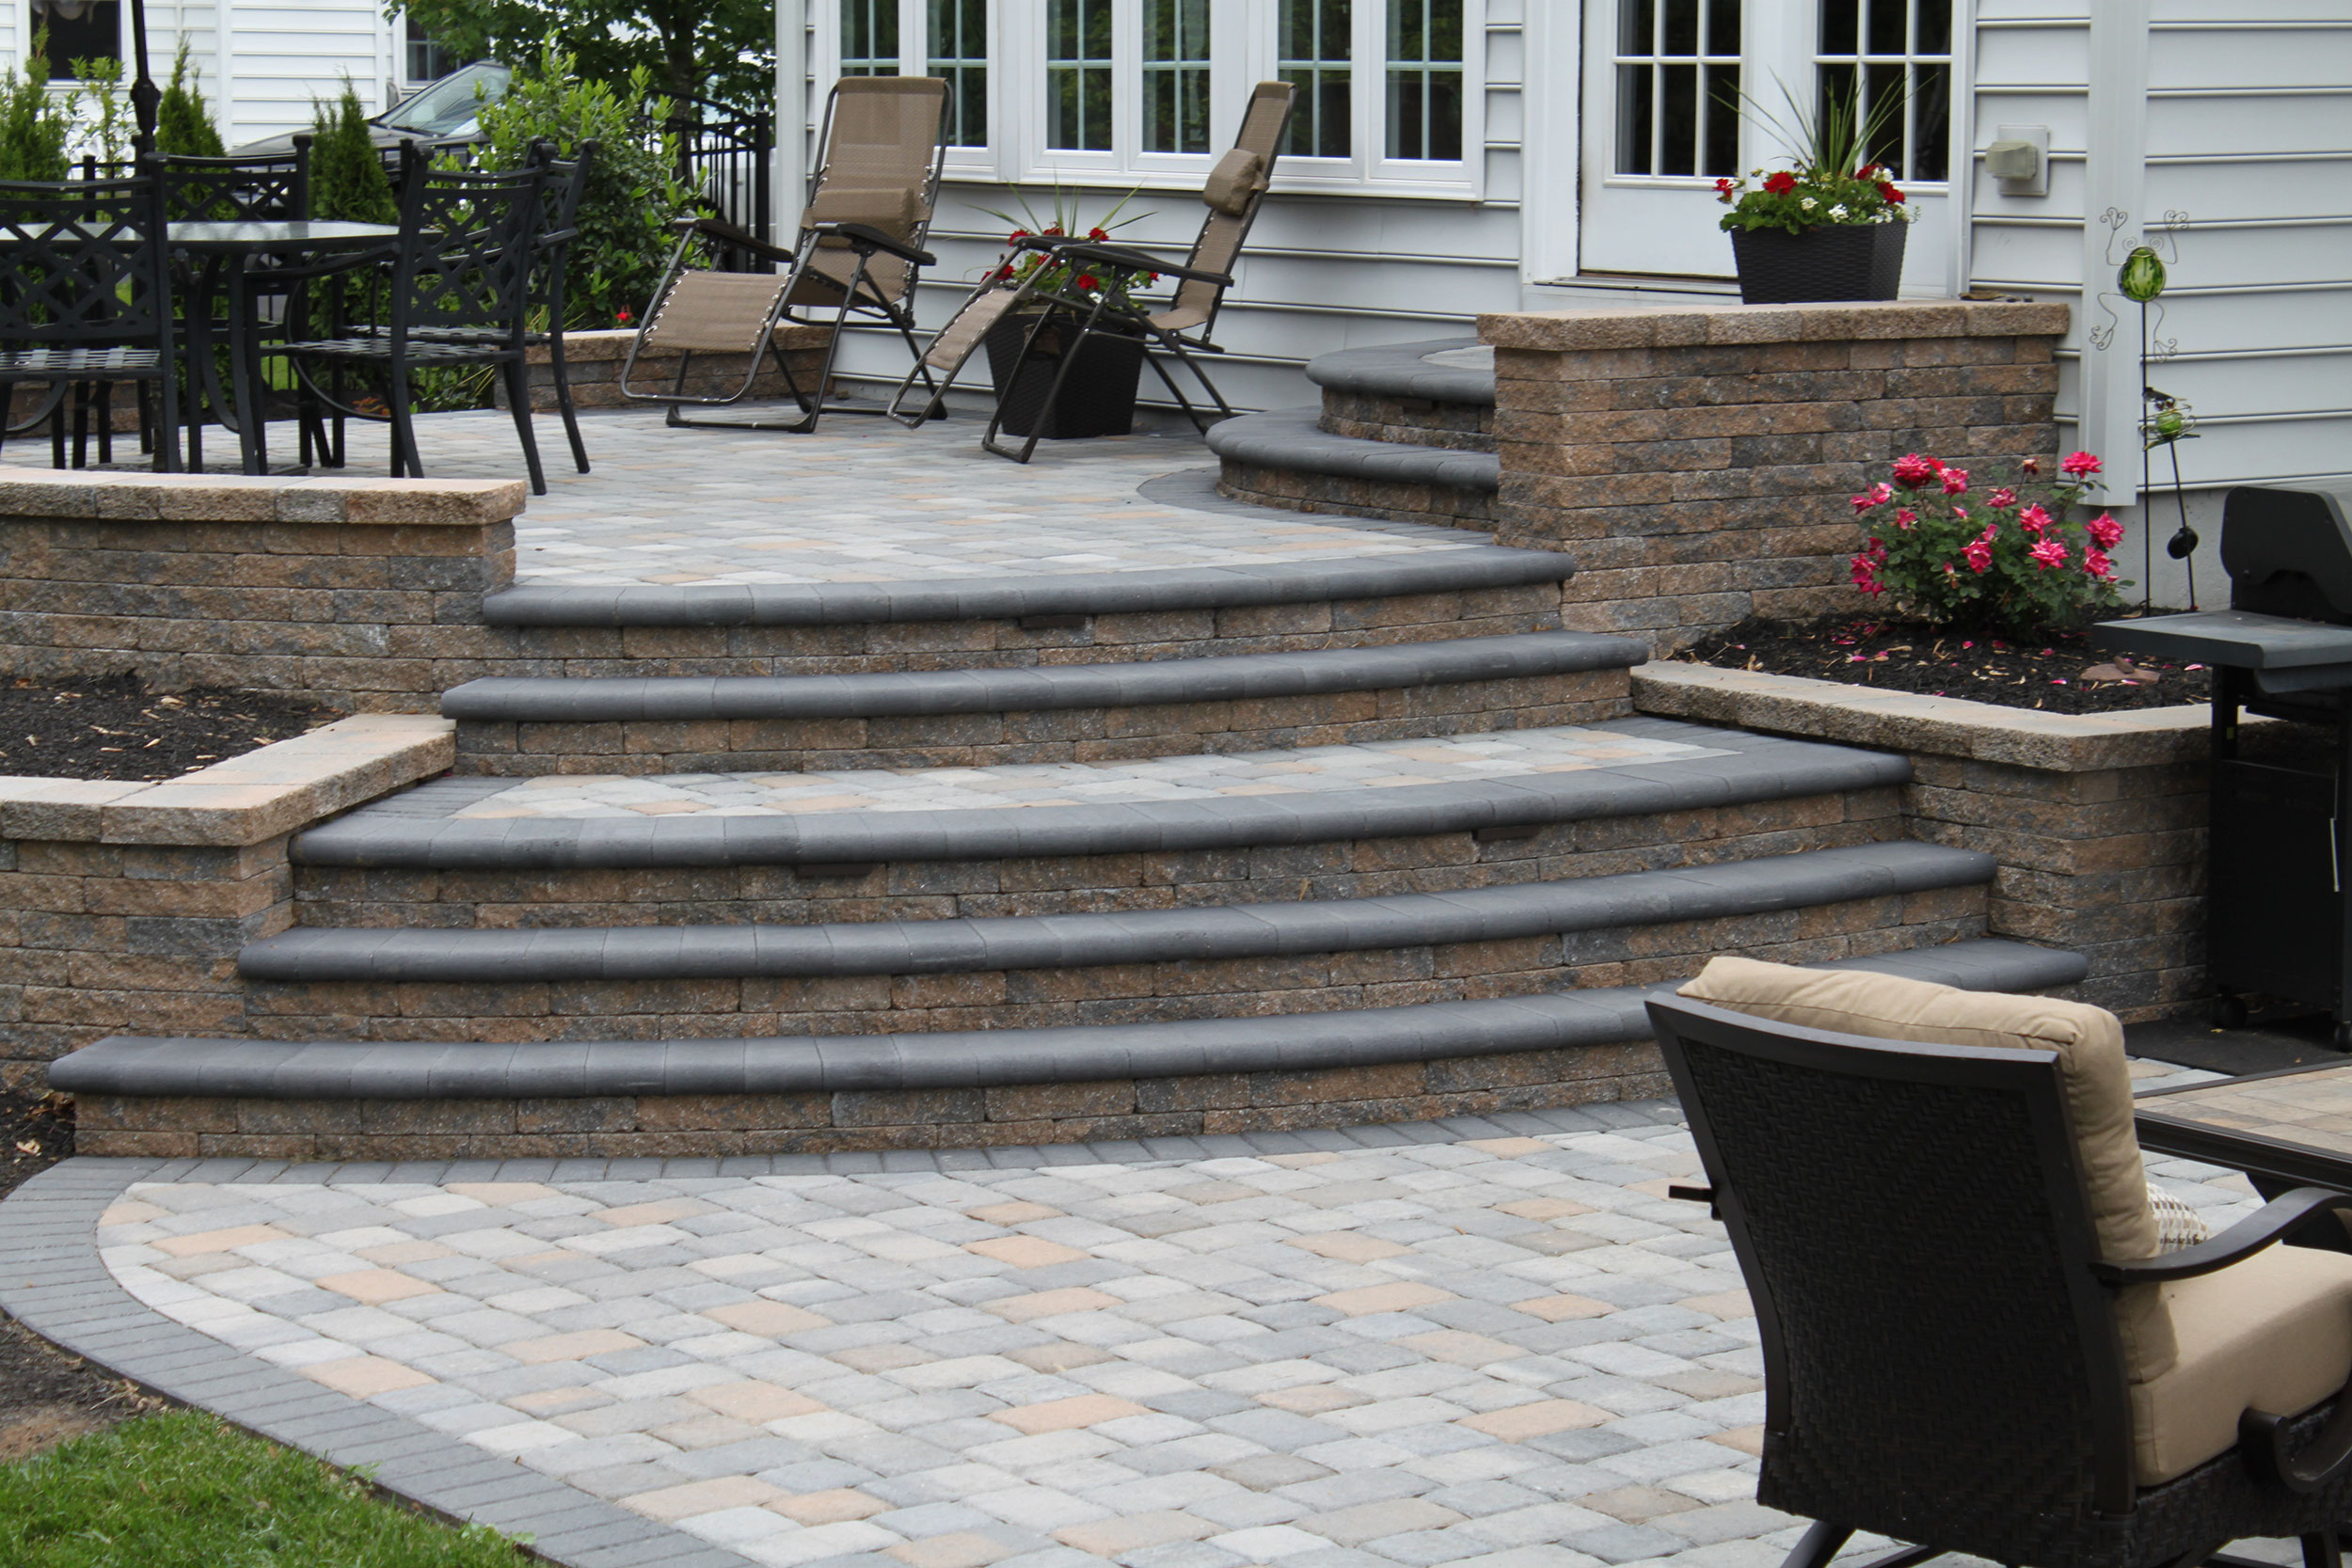 Doylestown Raised Patio | R&R Caddick Landscape Design on Raised Concrete Patio Ideas id=62986